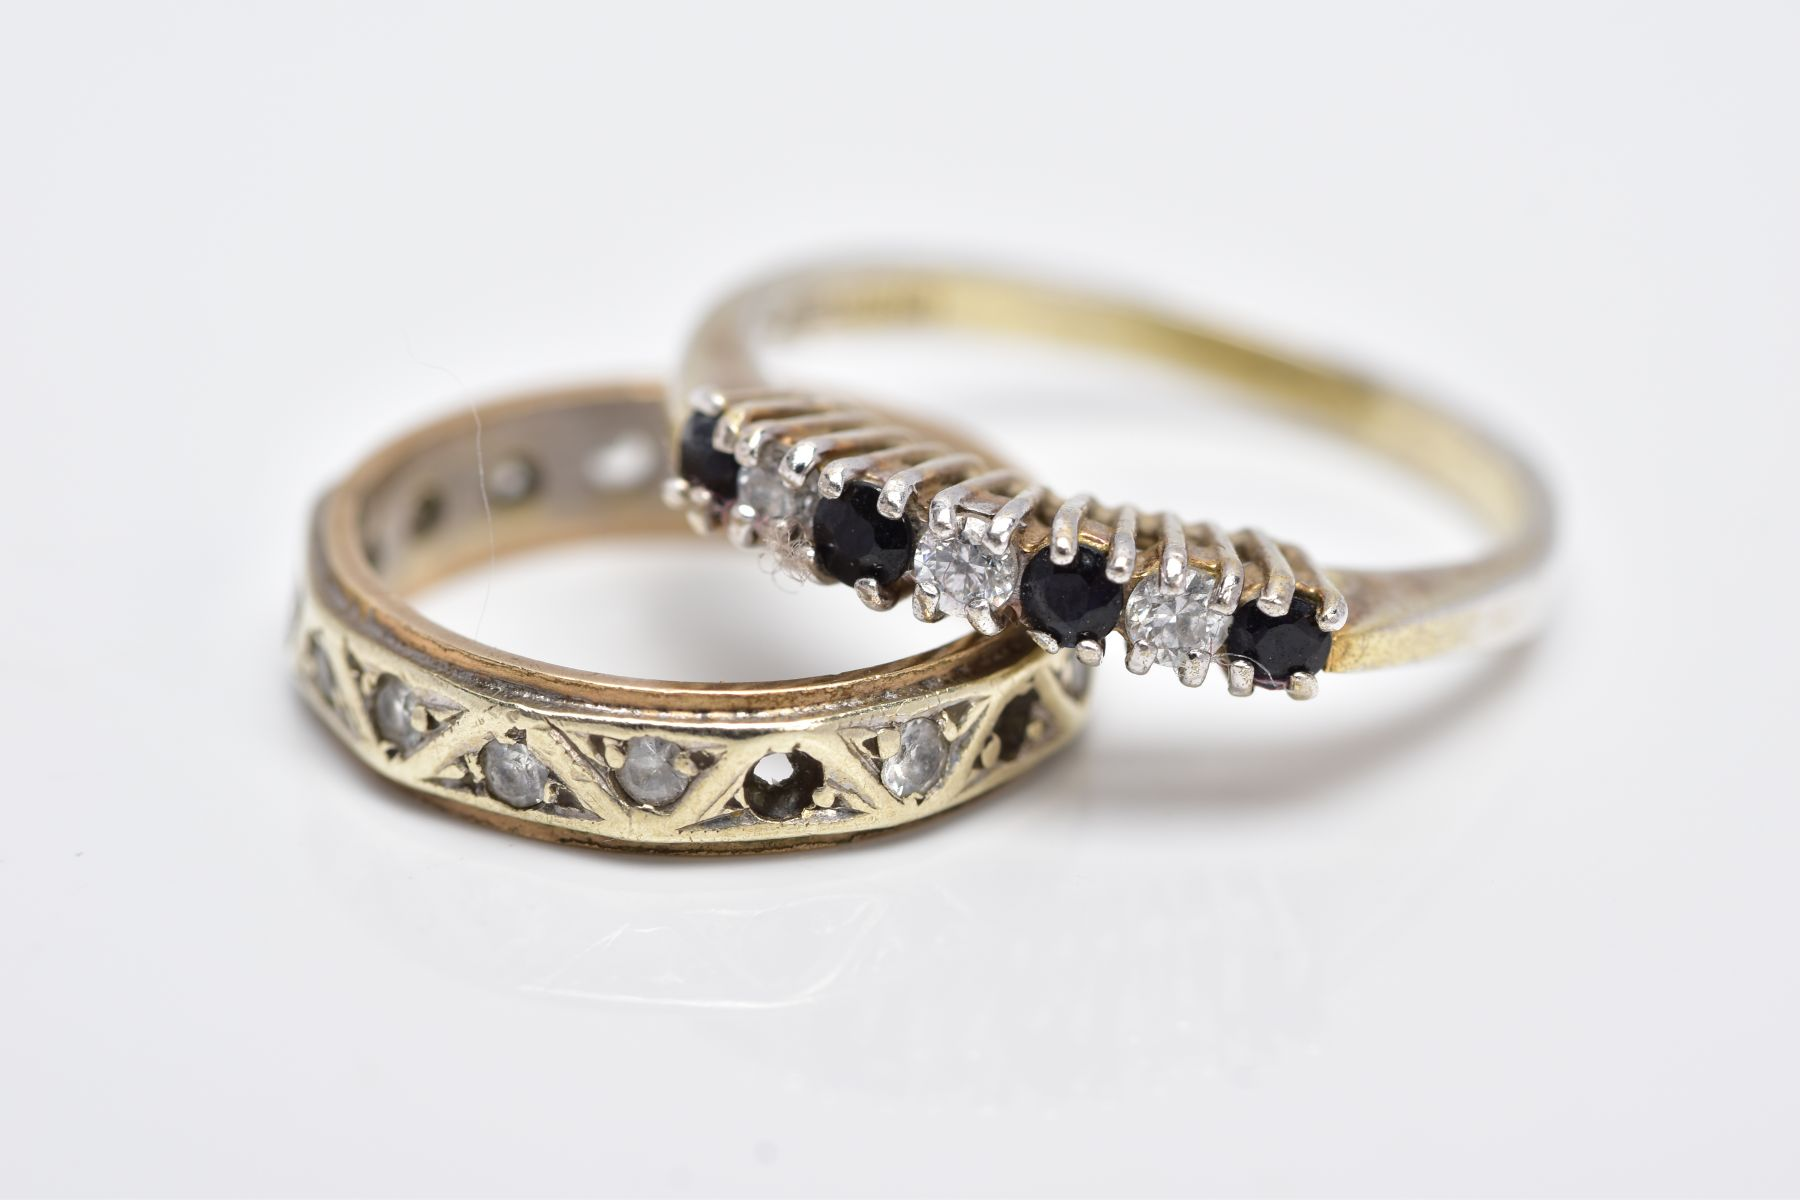 A YELLOW METAL FULL ETERNITY RING AND A SILVER GEM SET RING, the full eternity ring set with